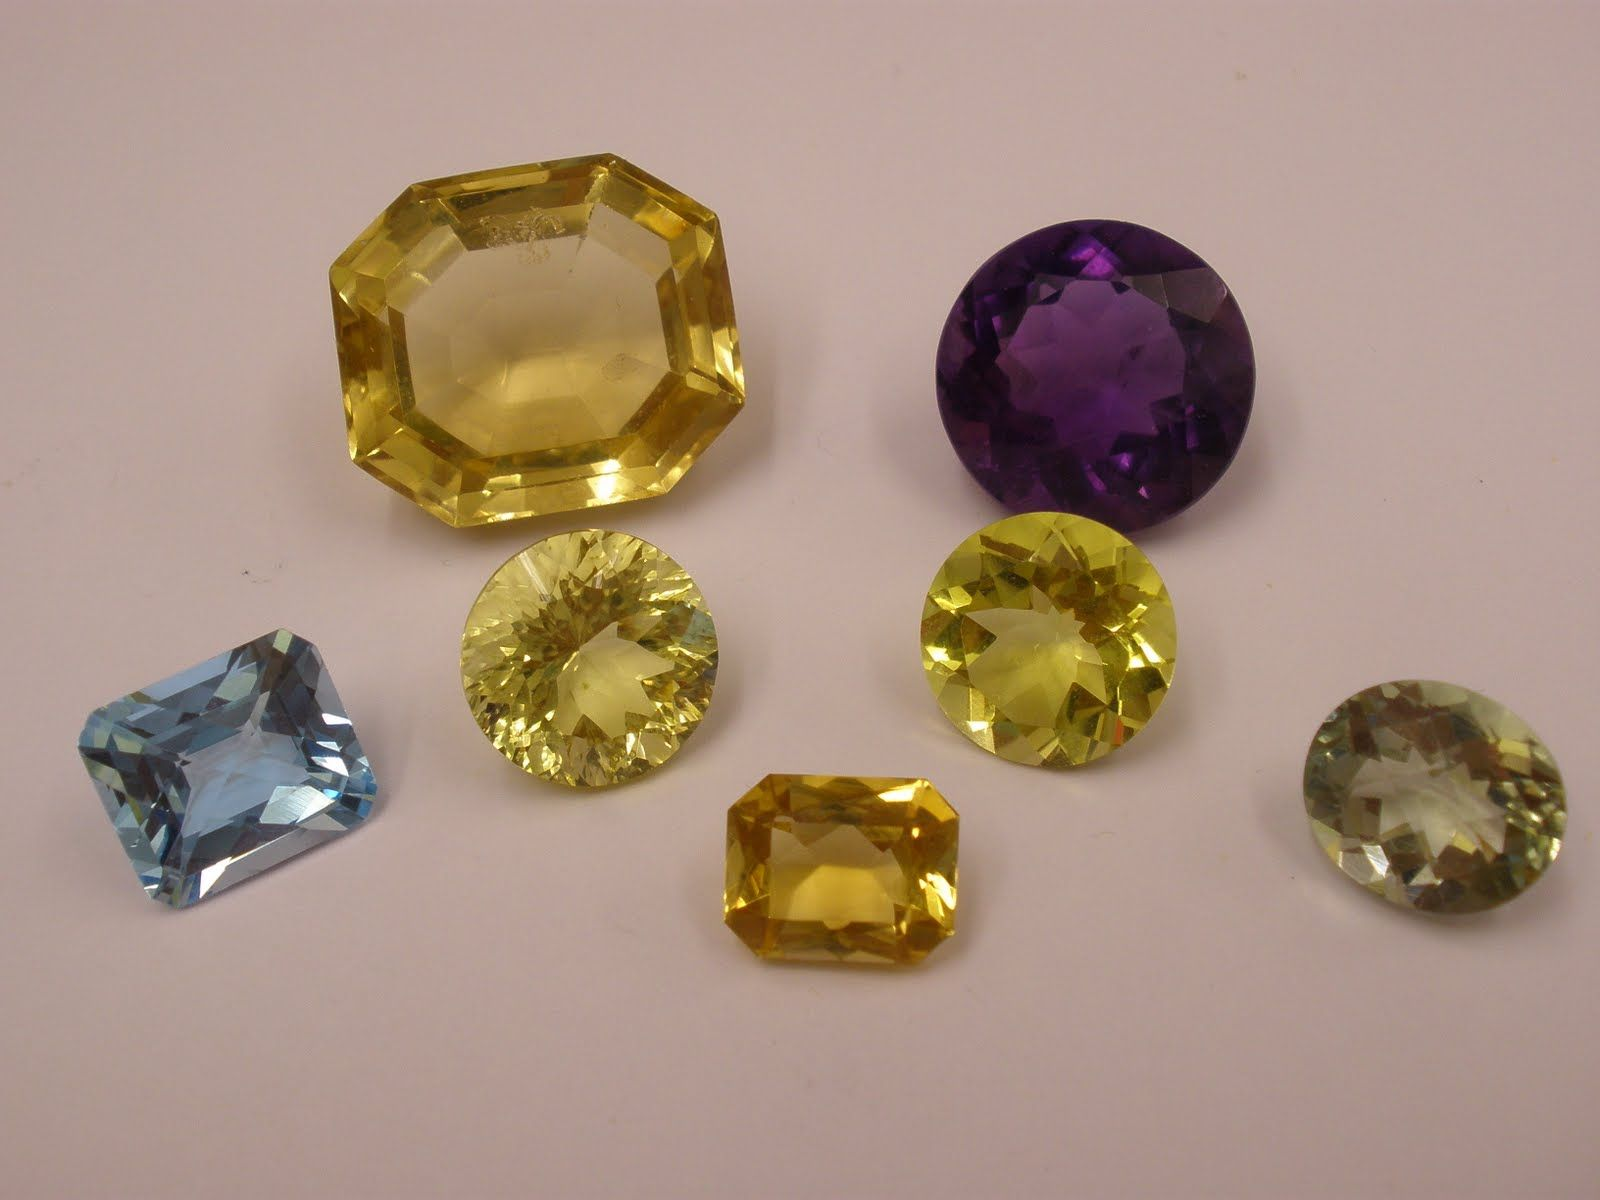 10 Most Rare Gemstones in the World